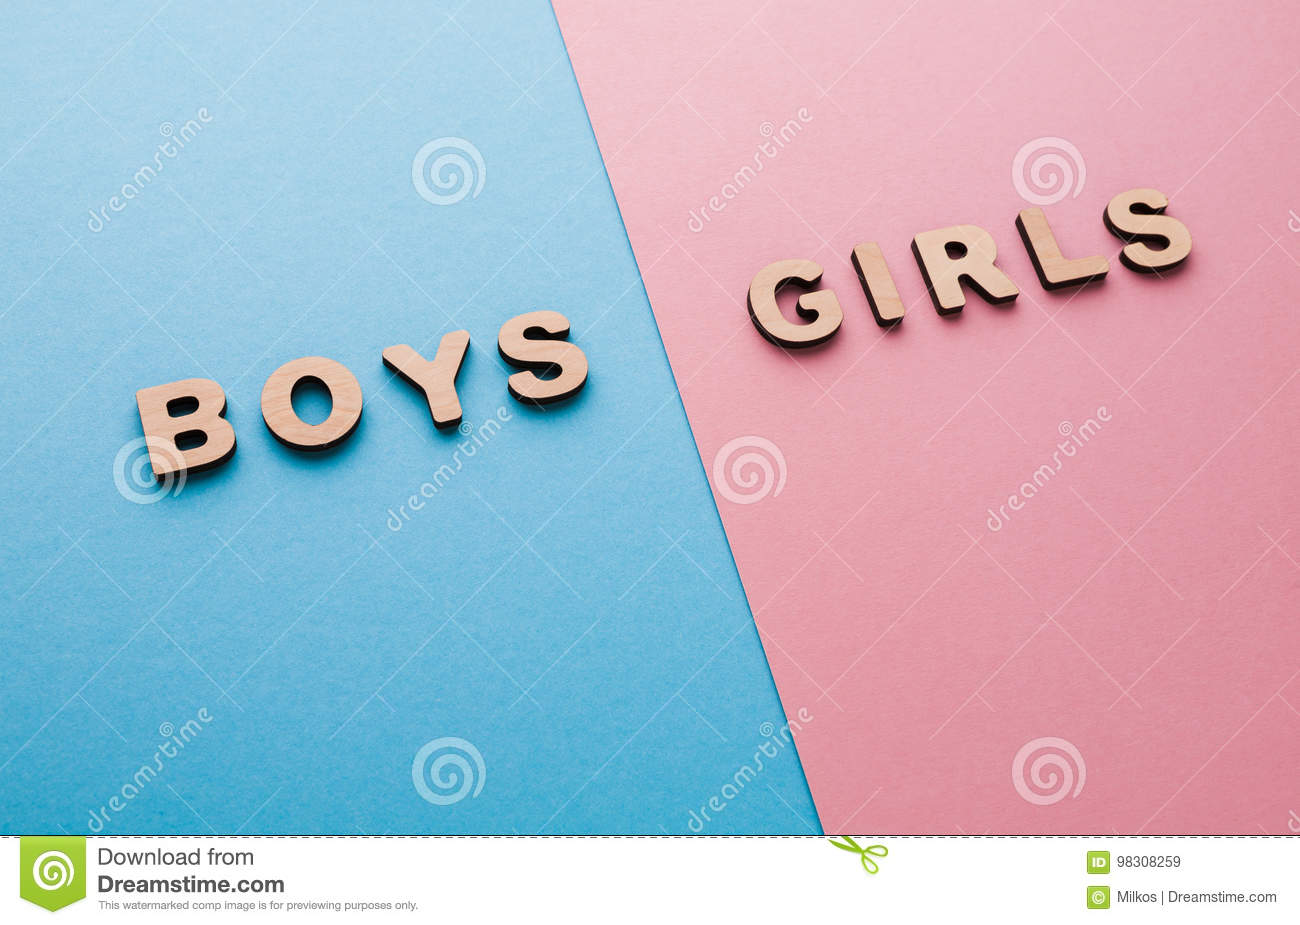 Words Boys And Girls On Bright Backgrounds Stock Image - Image of ...